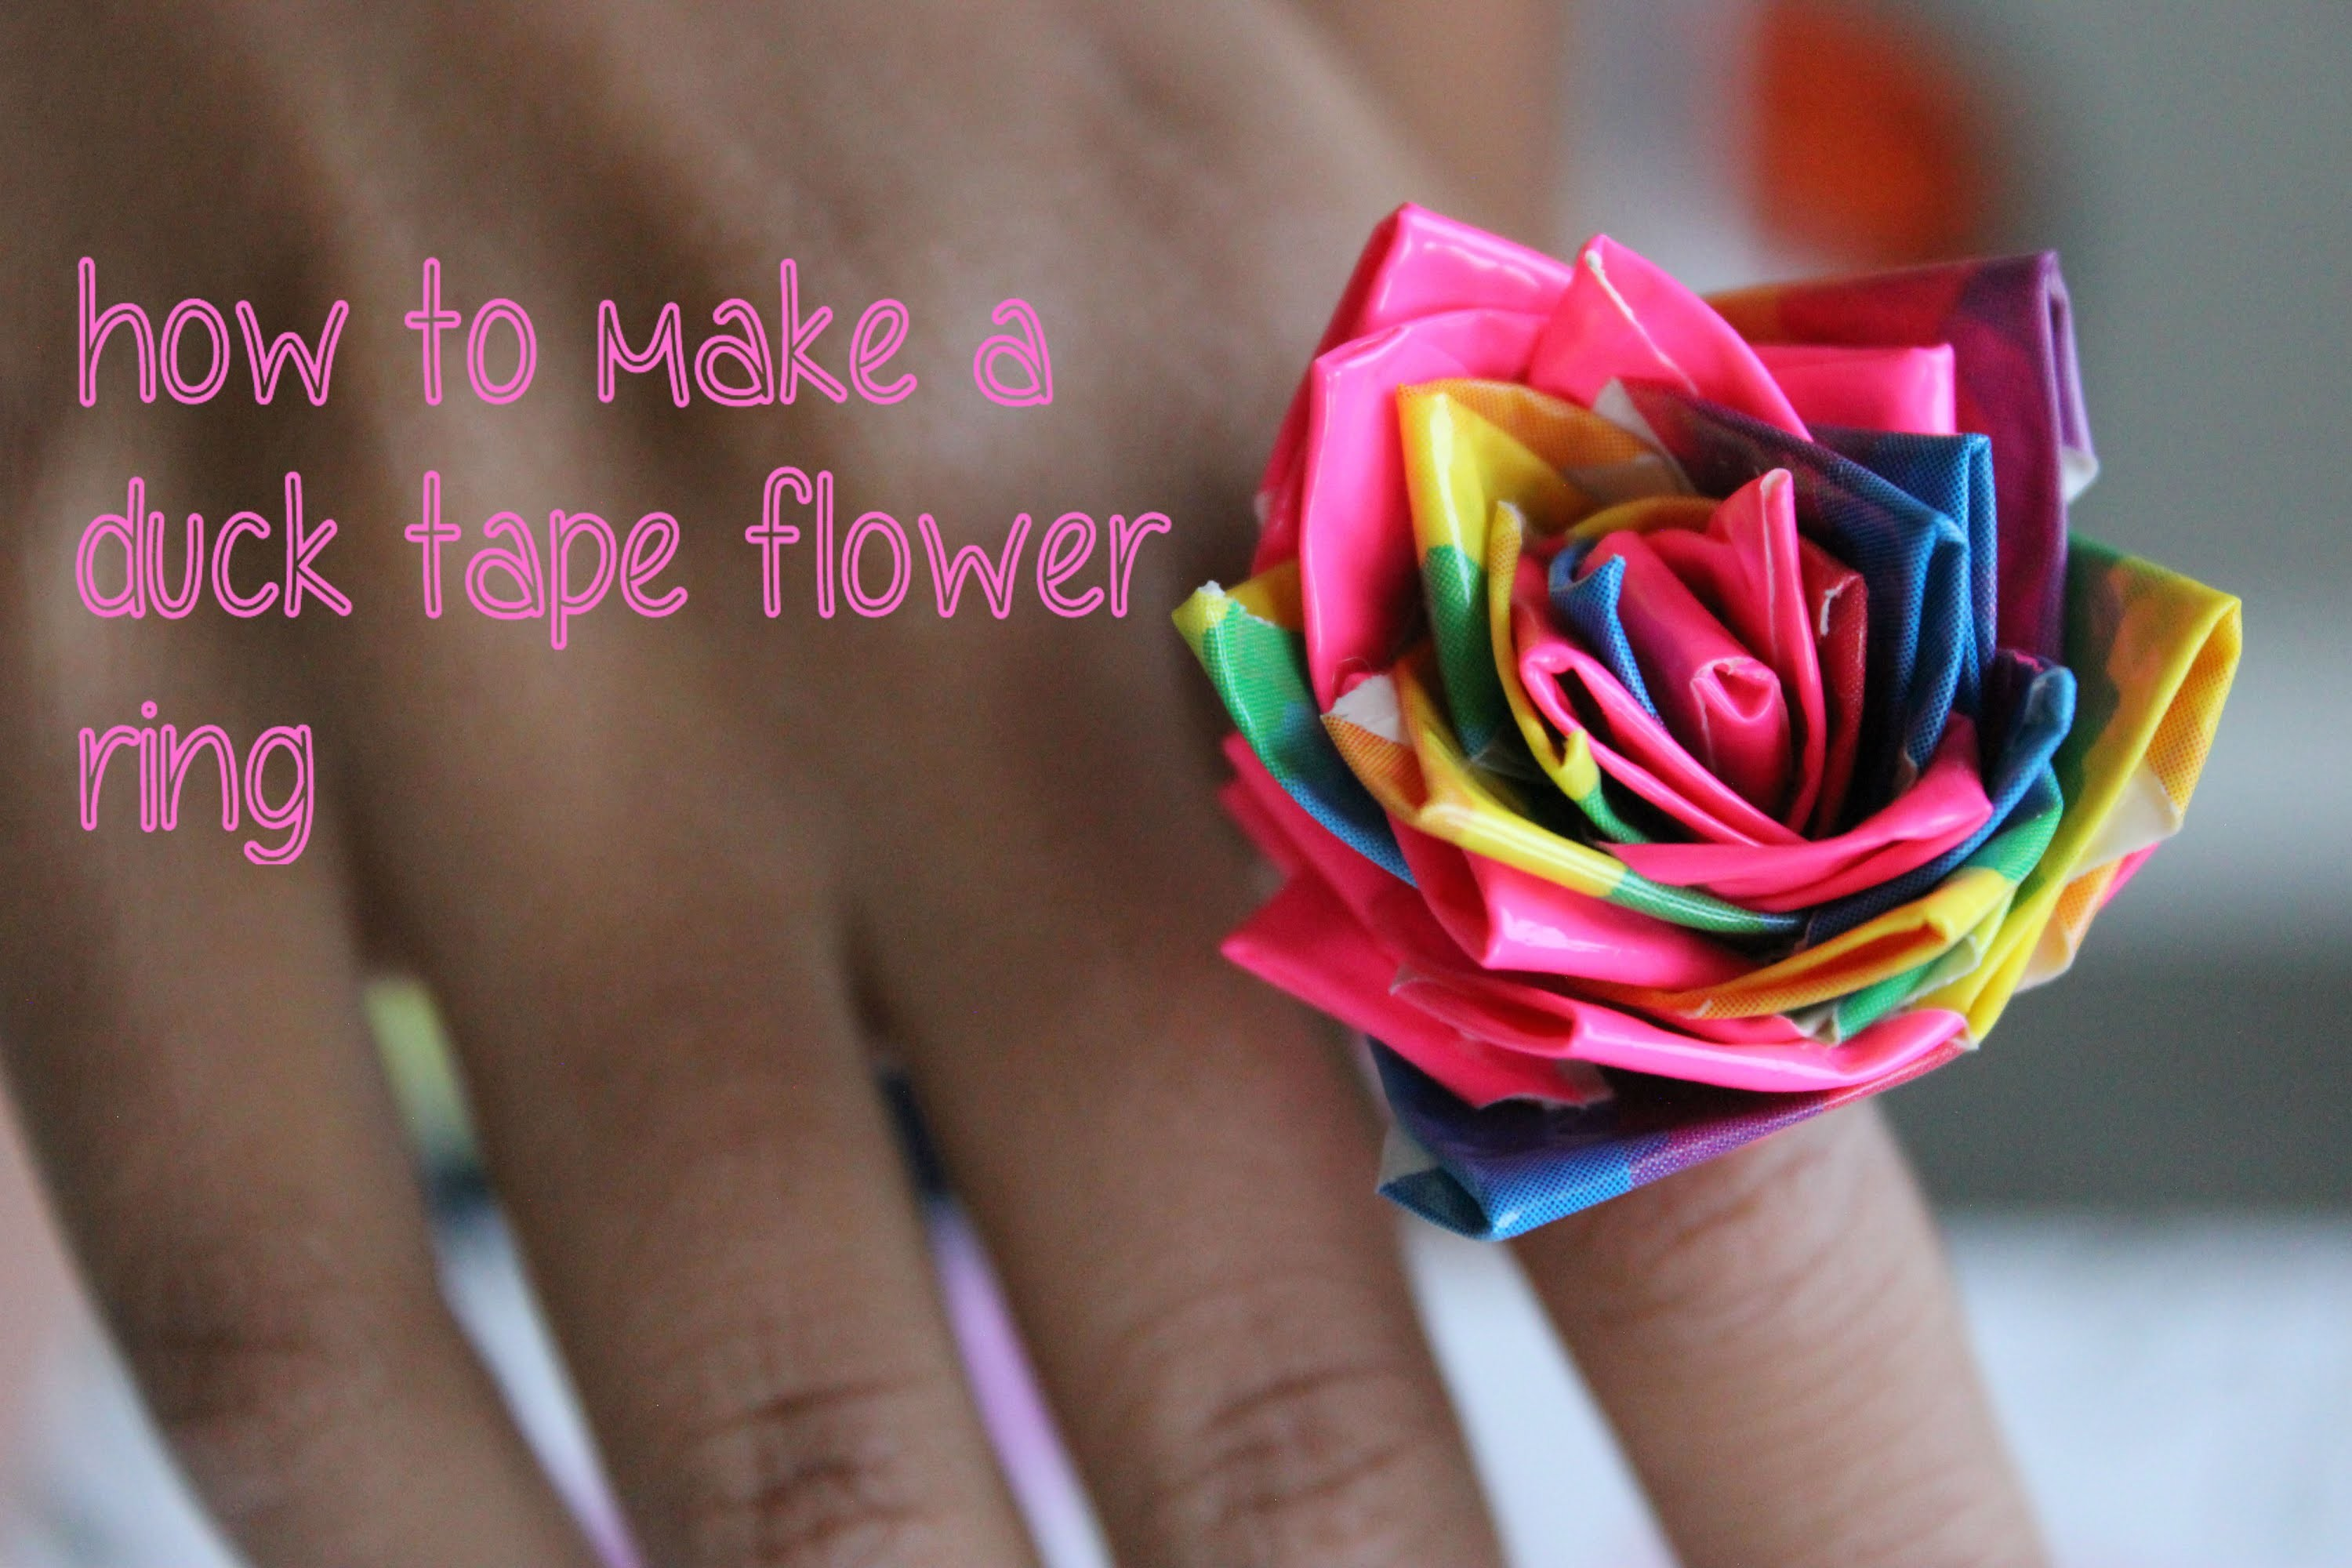 How to Make Duck Tape Flower ring and WINNERS!!